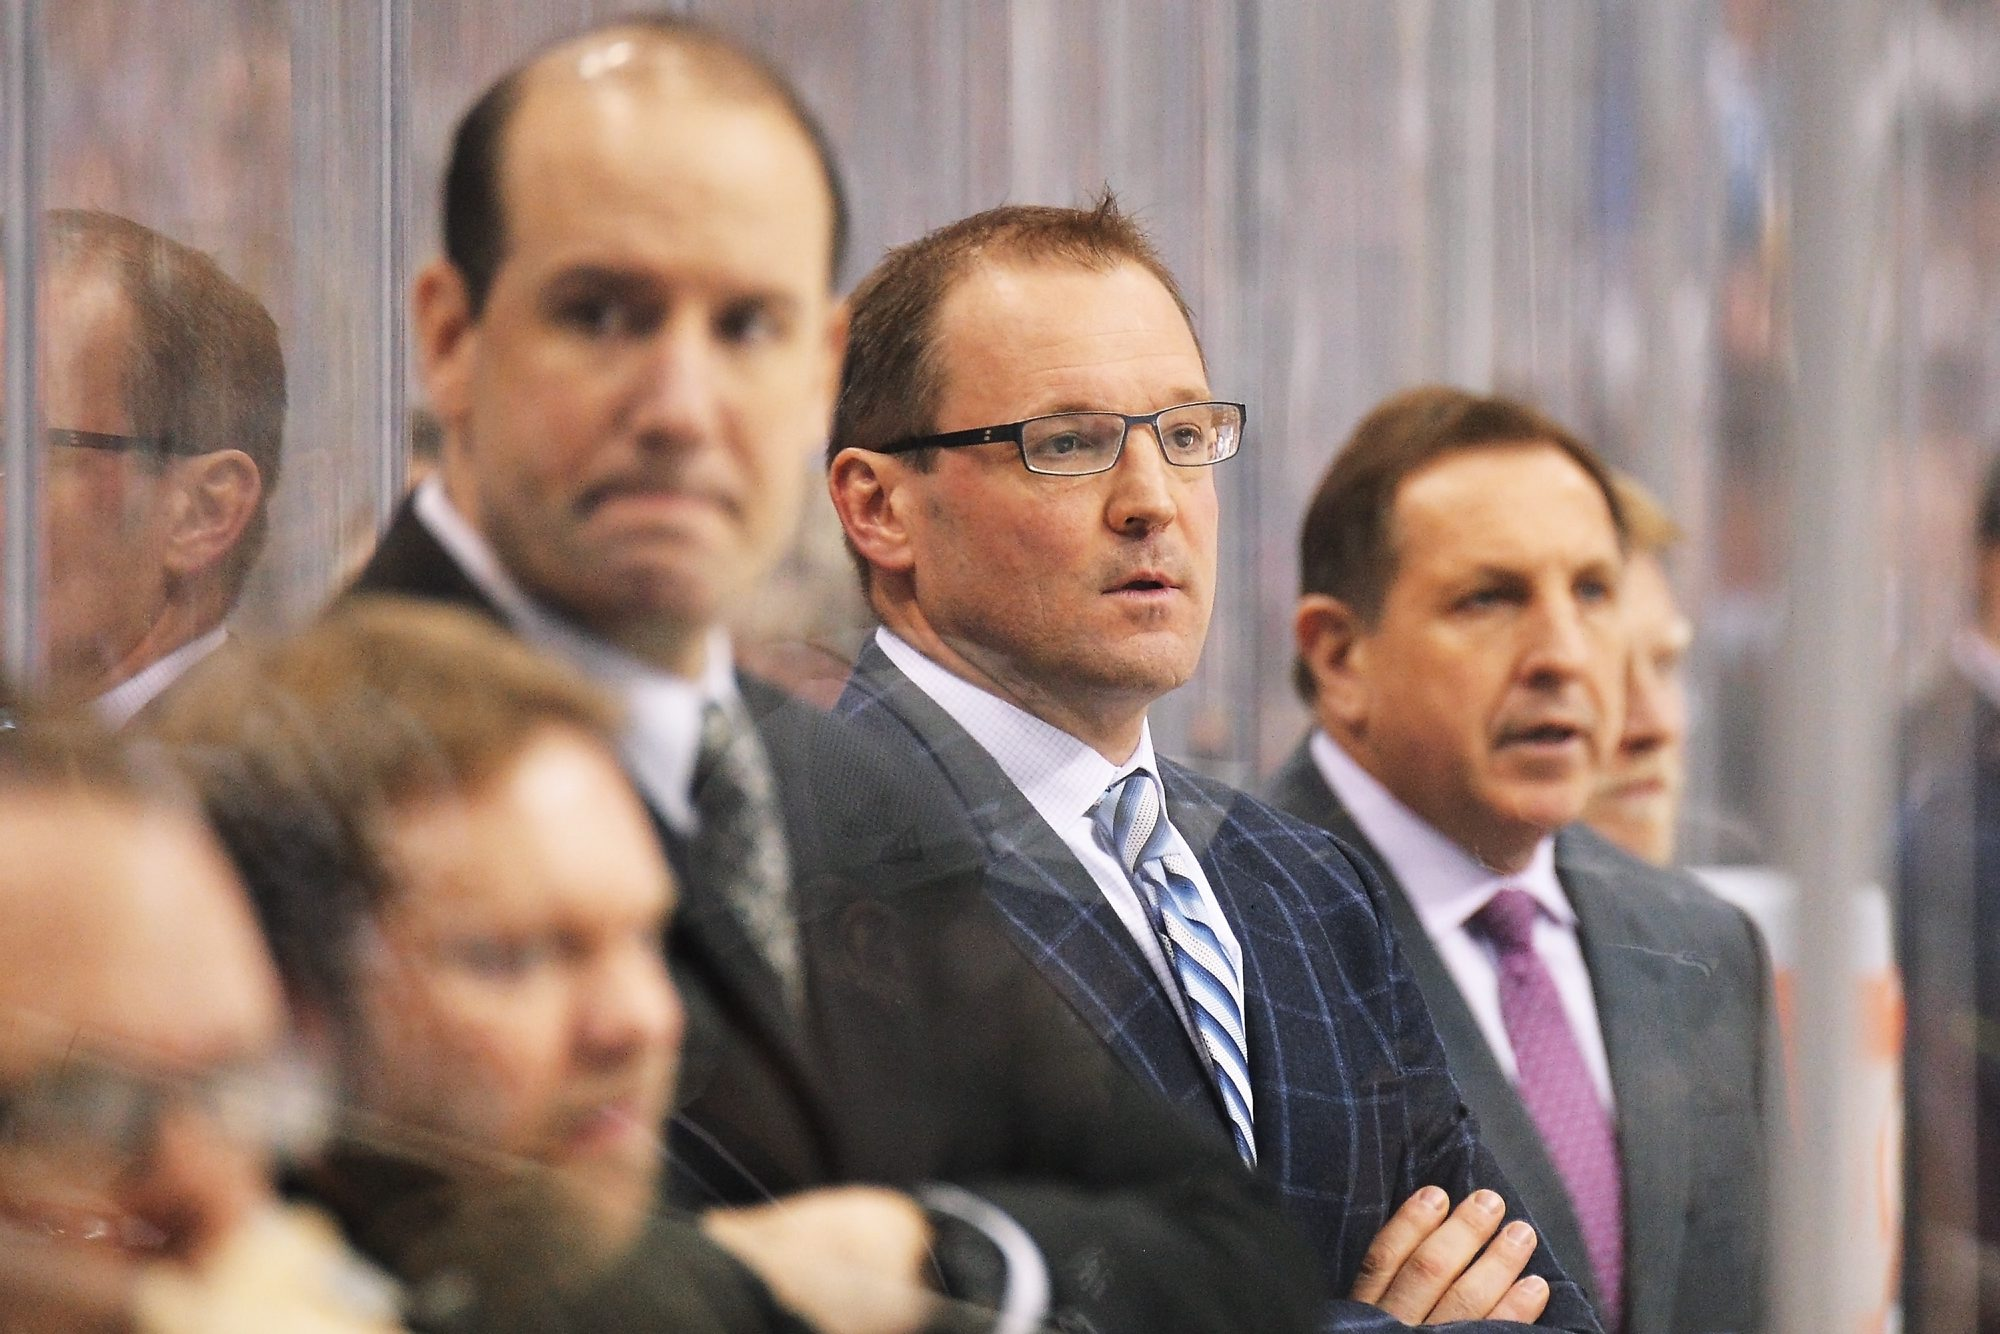 PITTSBURGH, PA - MAY 13:  Head Coach Dan Bylsma of the Pittsburgh Penguins watches his team play the New York Rangers in the first period of Game Seven of the Second Round of the 2014 NHL Stanley Cup Playoffs on May 13, 2014 at CONSOL Energy Center in Pittsburgh, Pennsylvania. New York defeated Pittsburgh 2-1 to advance to the next round.  (Photo by Jamie Sabau/Getty Images)